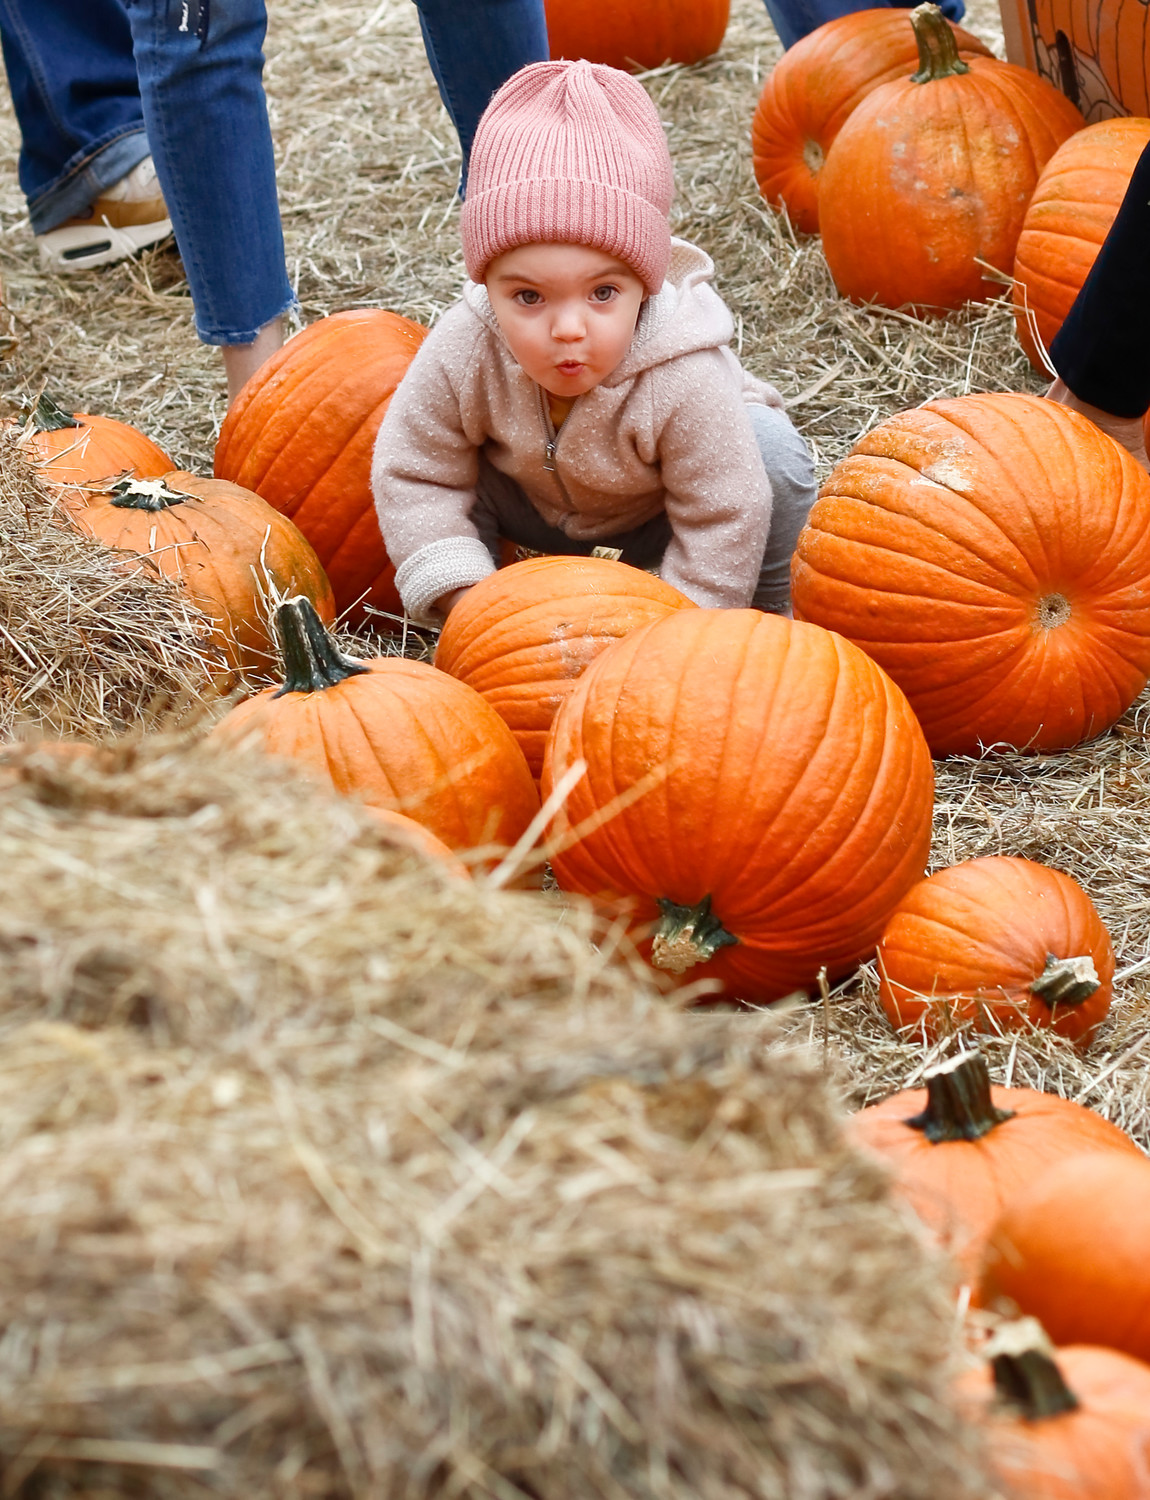 Isabel Combs, 1, picked her favorite pumpkin in the patch at the city's annual Fall Festival at Kennedy Plaza last Sunday.